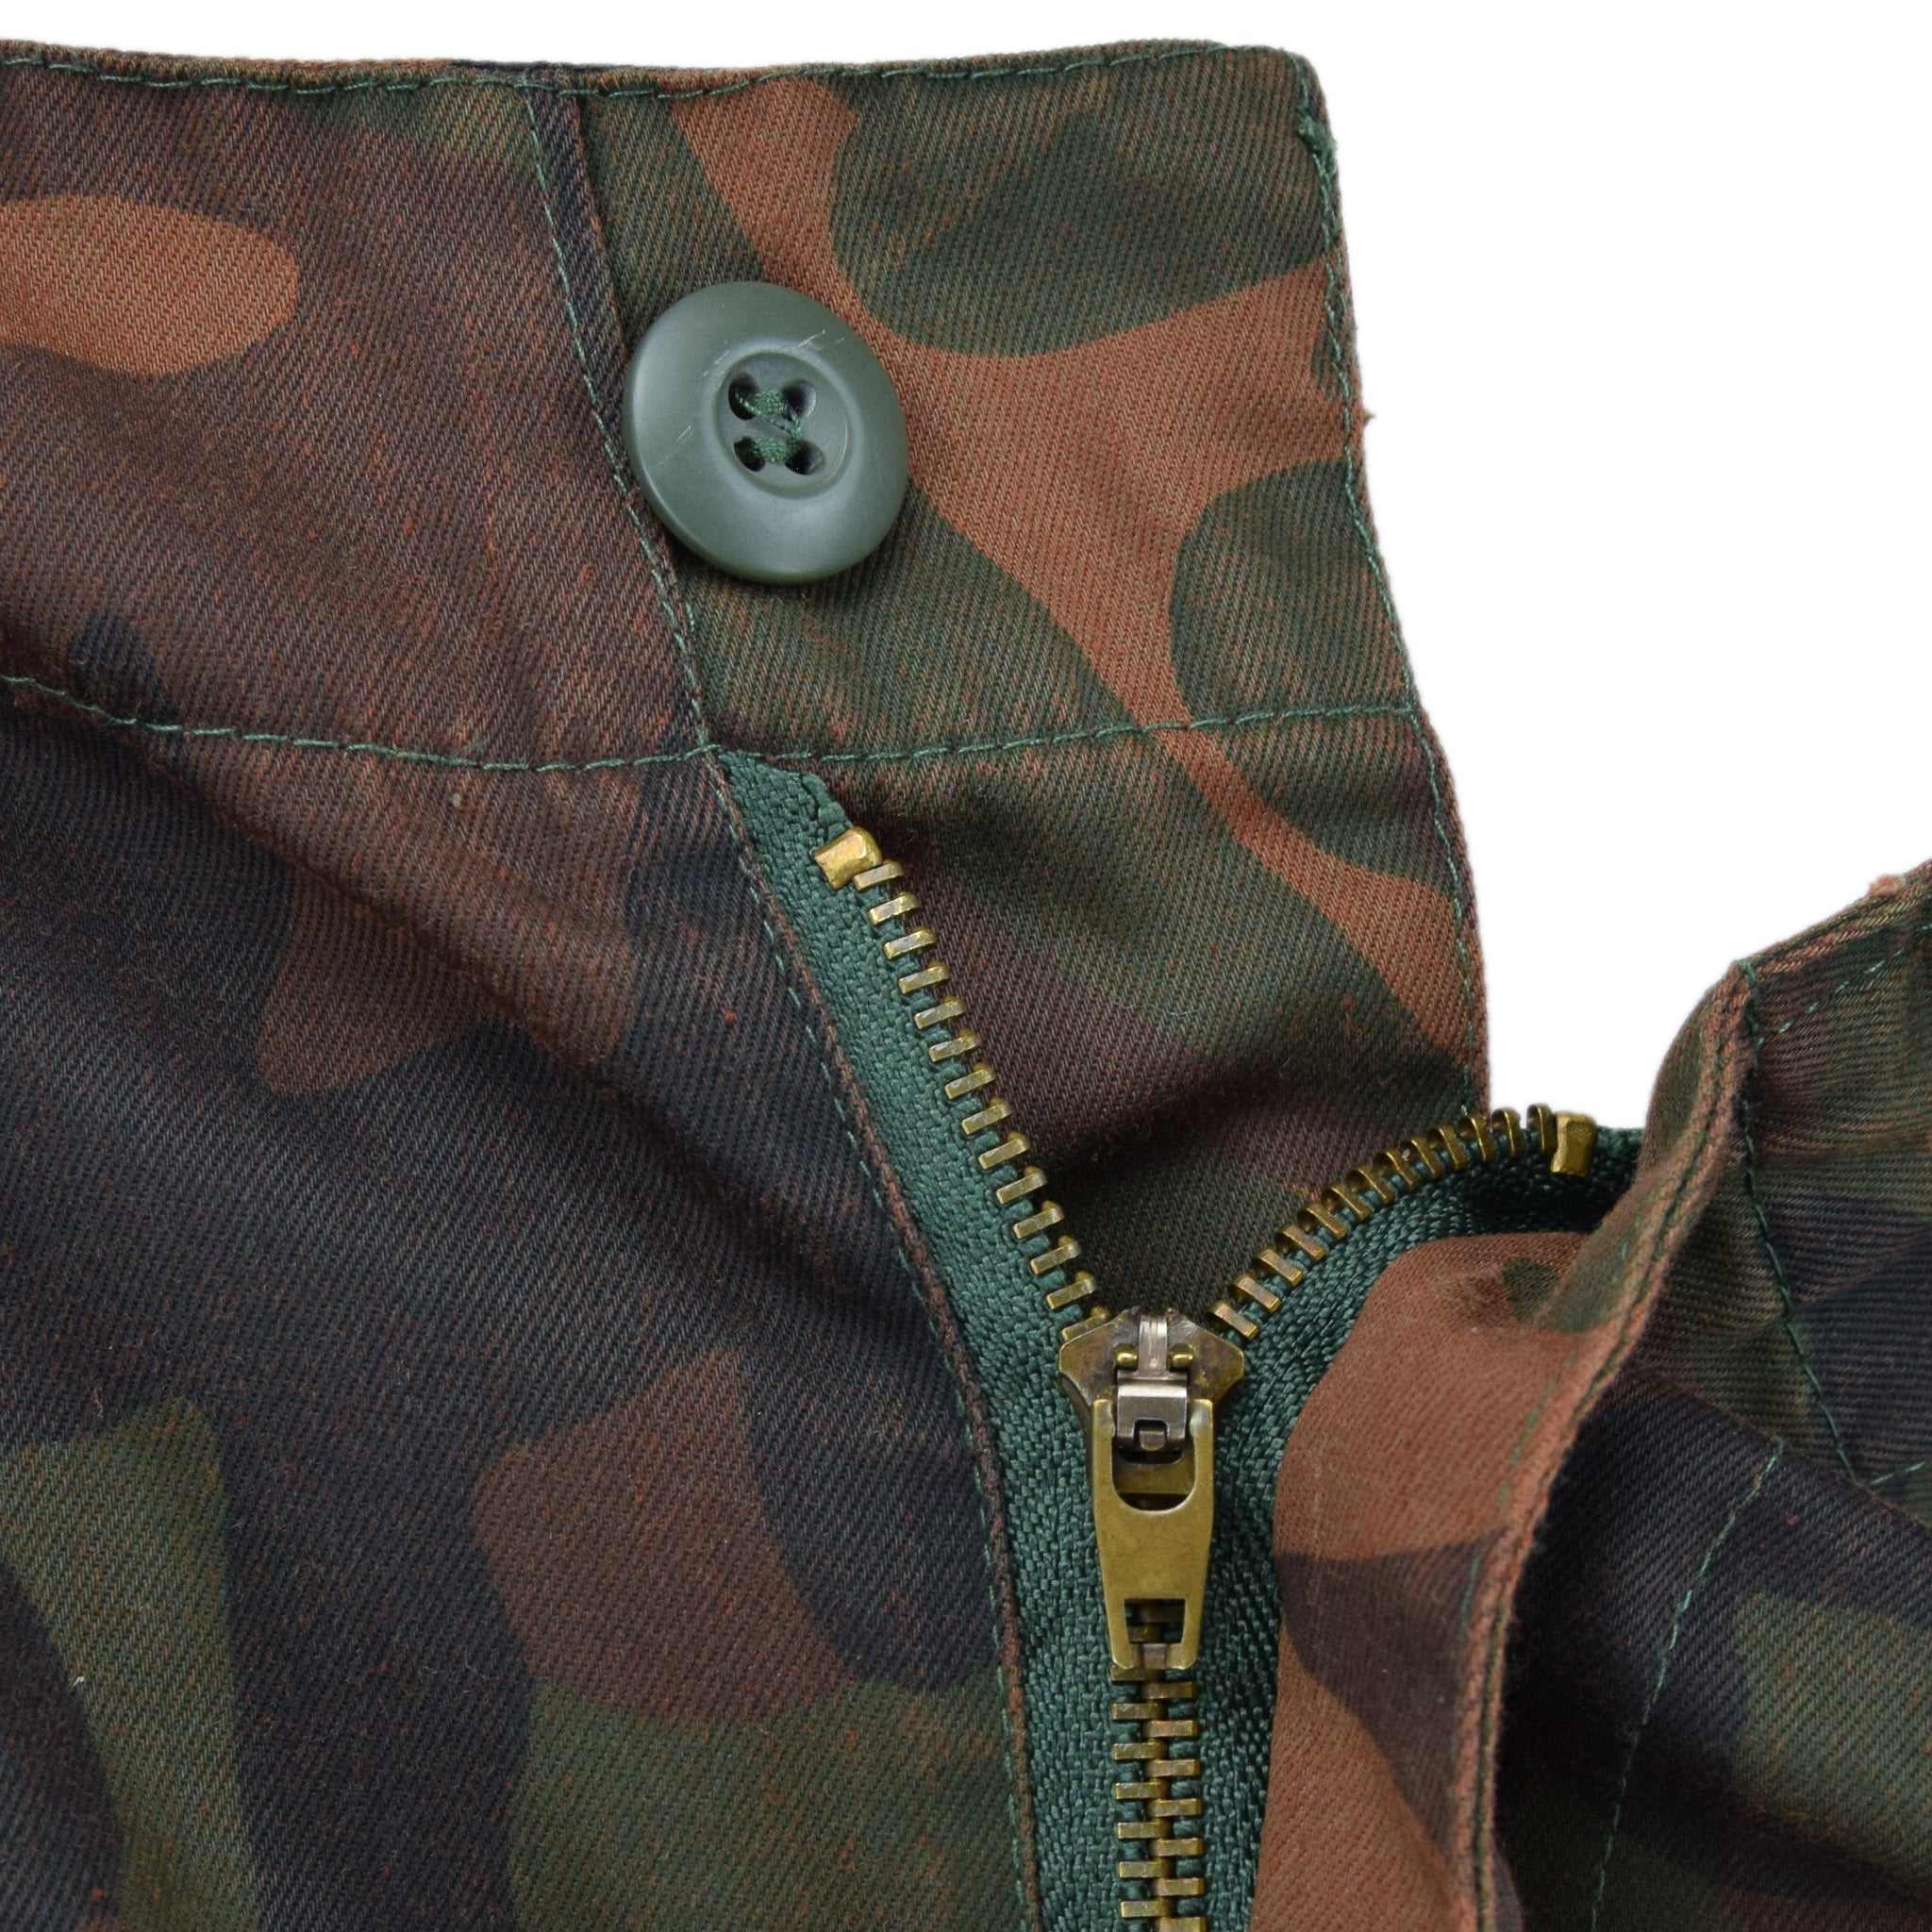 Vintage 80s USMC M-89 Survival Camo Military Combat Field Trousers 32 W fly front zip